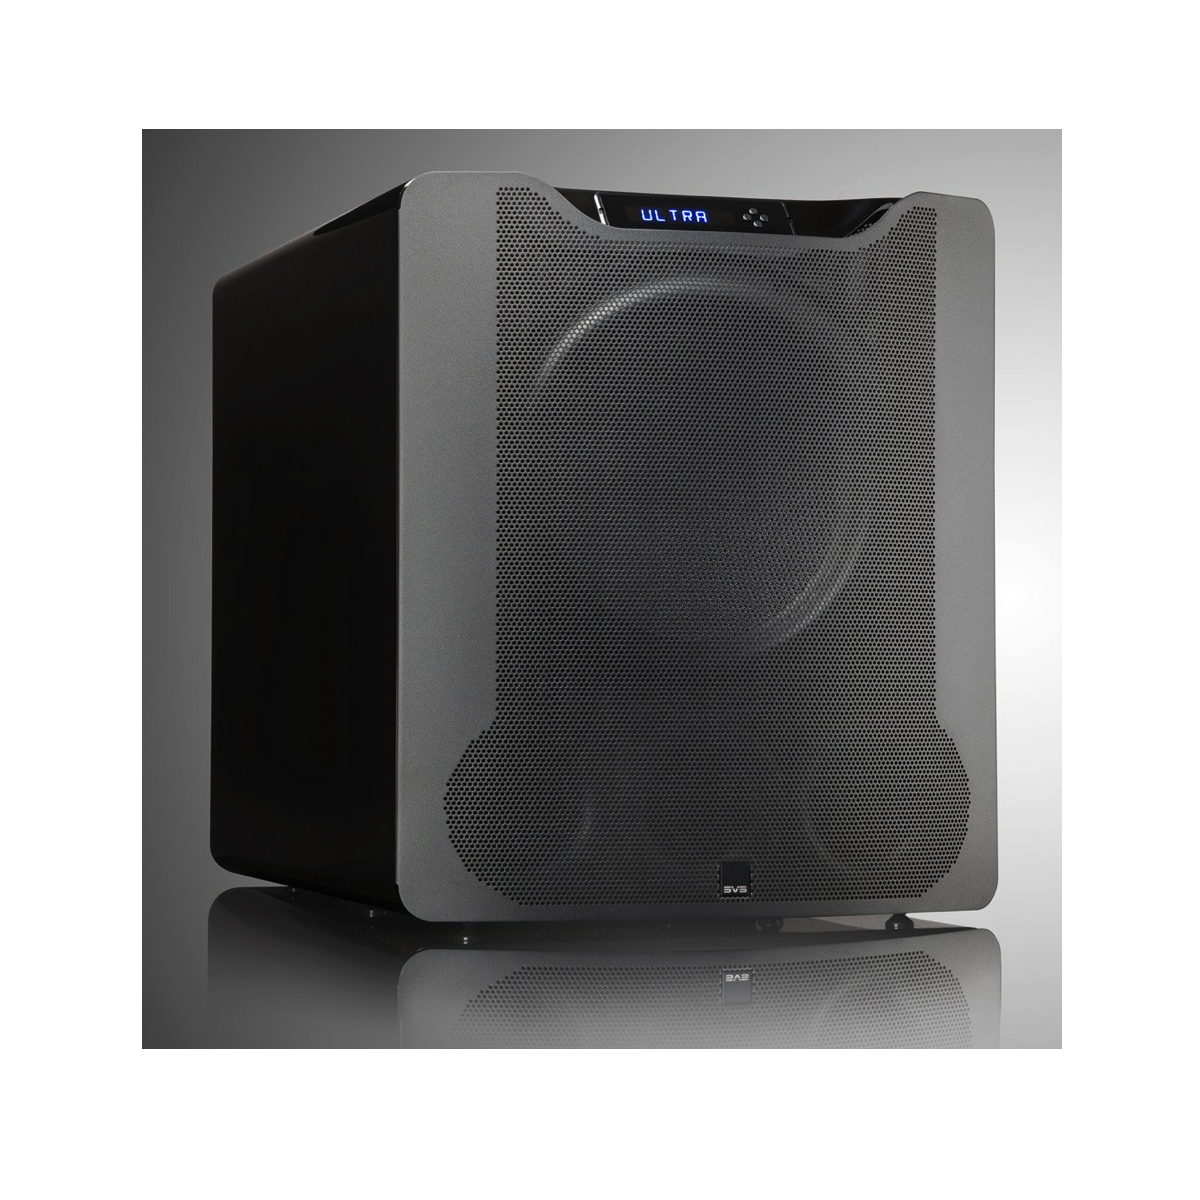 SVS Sound PB-16 Ultra Subwoofer - Piano Gloss Black, SVS Sound, Subwoofer - AVStore.in